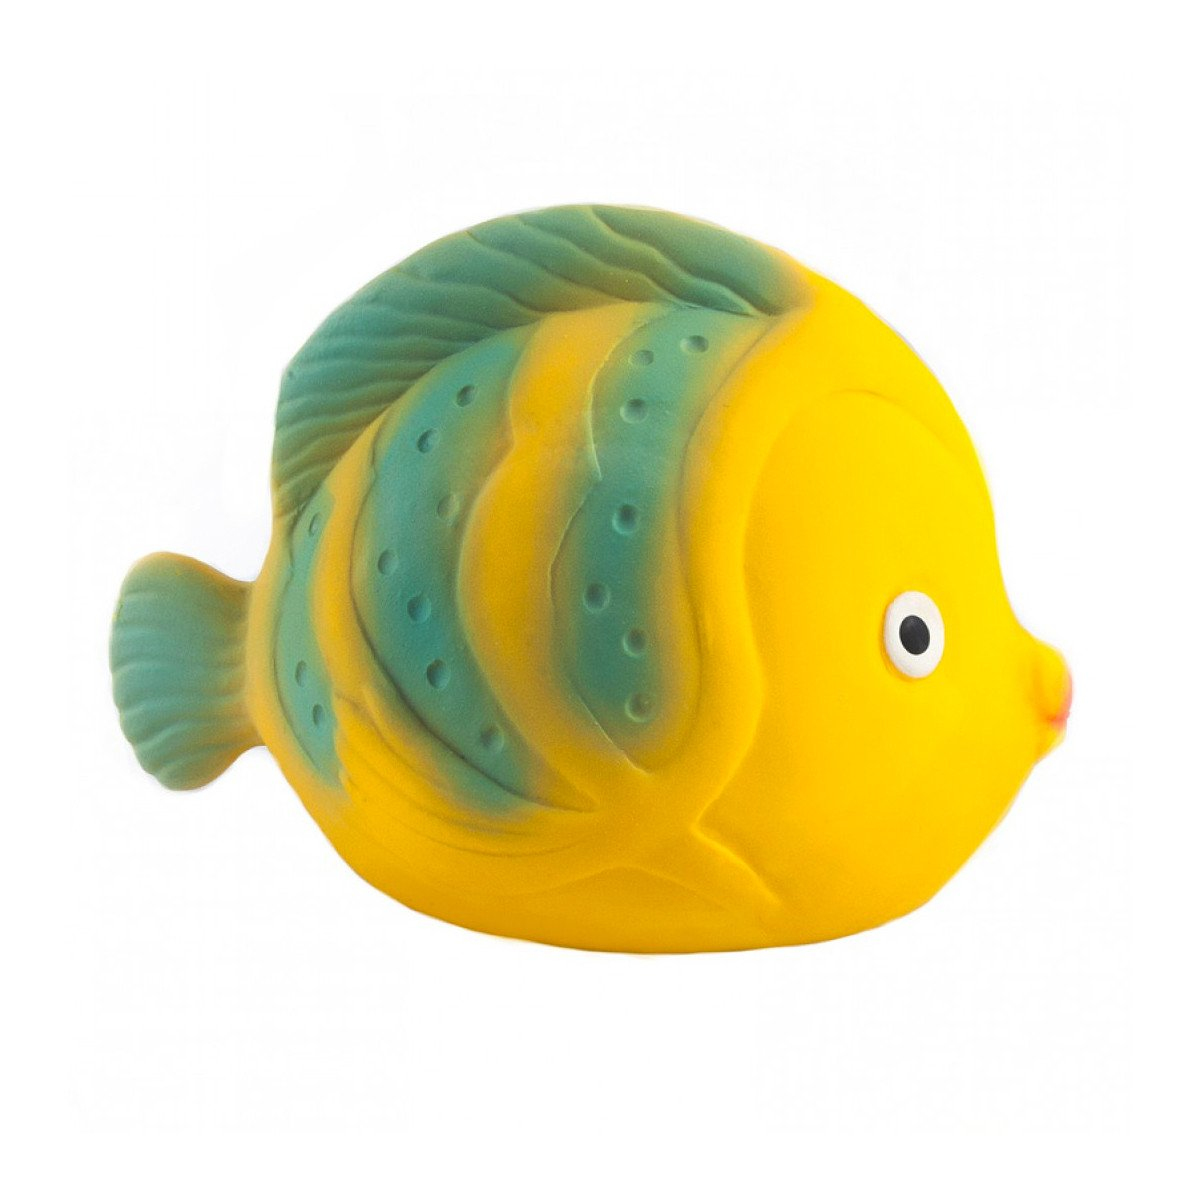 Caaocho La Butterfly Fish Caaocho Dummies and Teethers at Little Earth Nest Eco Shop